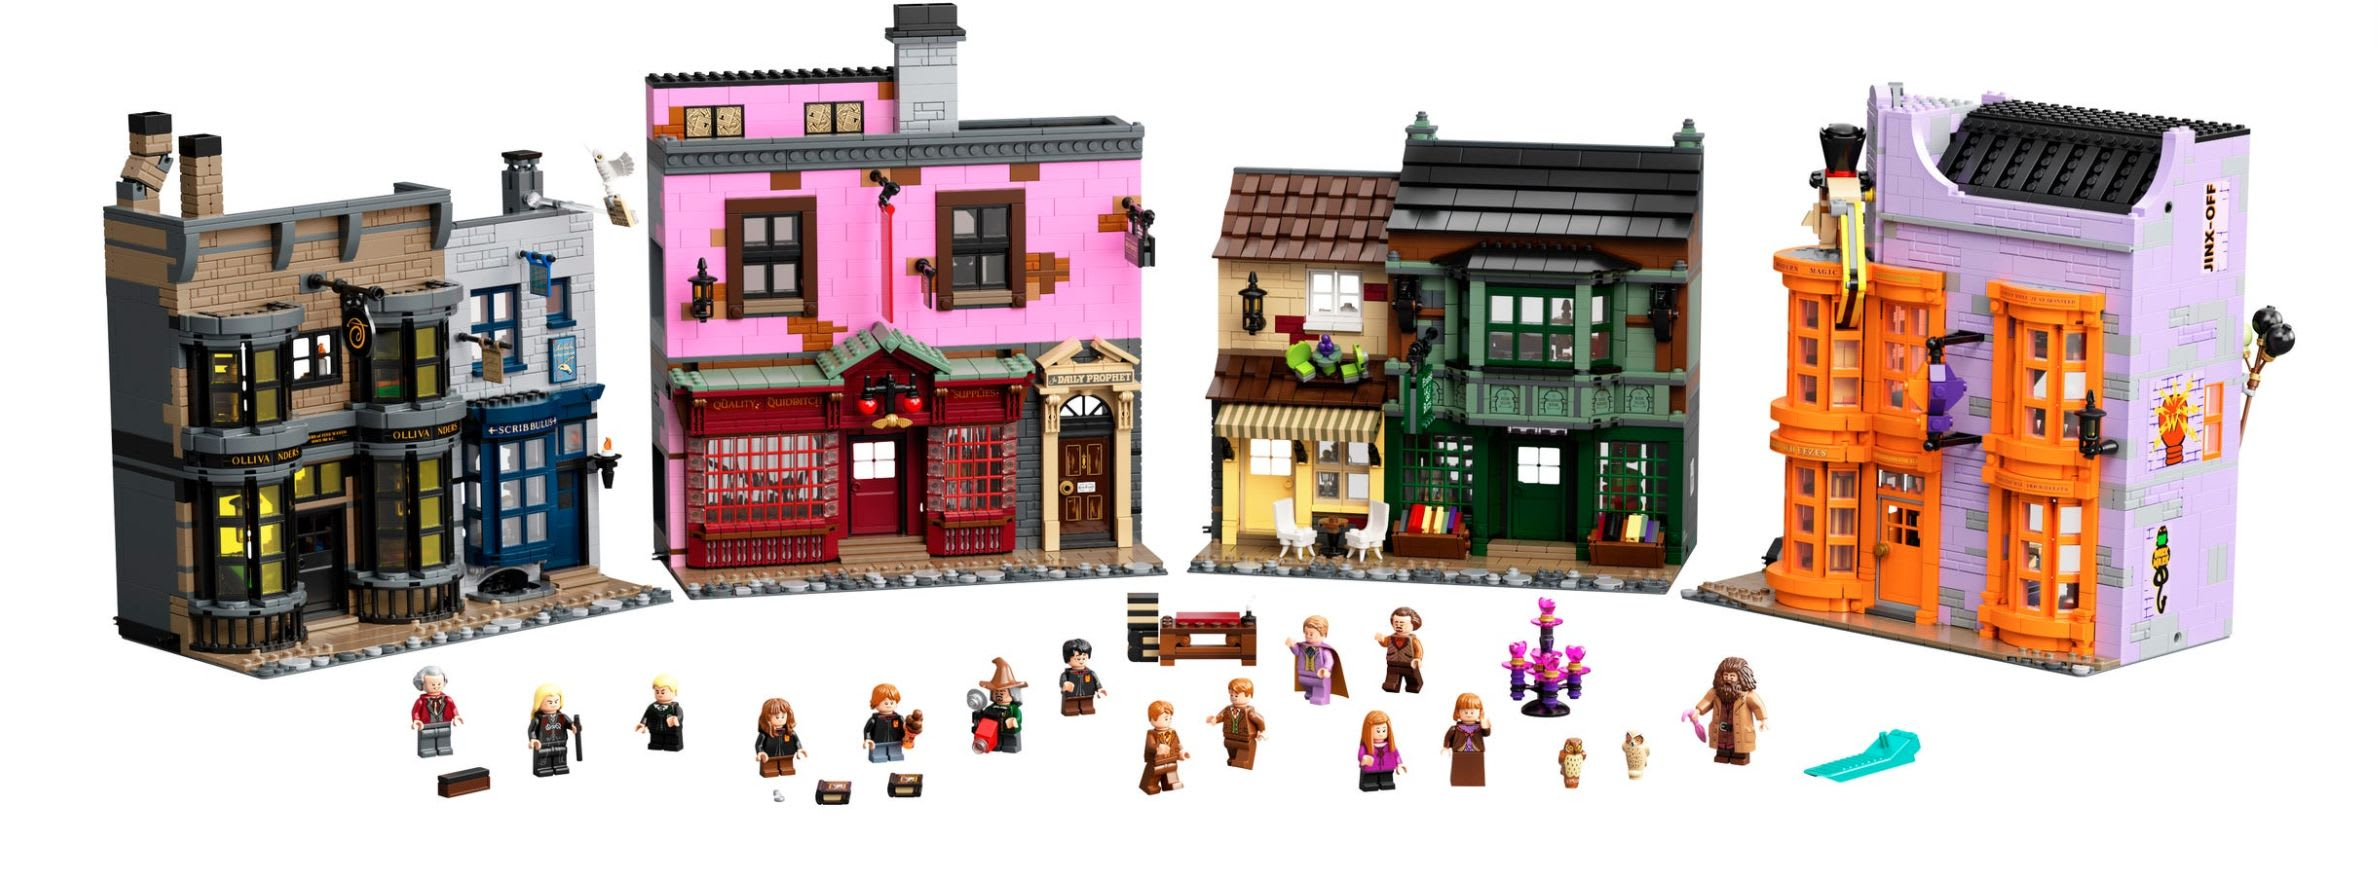 Discover the LEGO Harry Potter Diagon Alley Set available at LEGO.